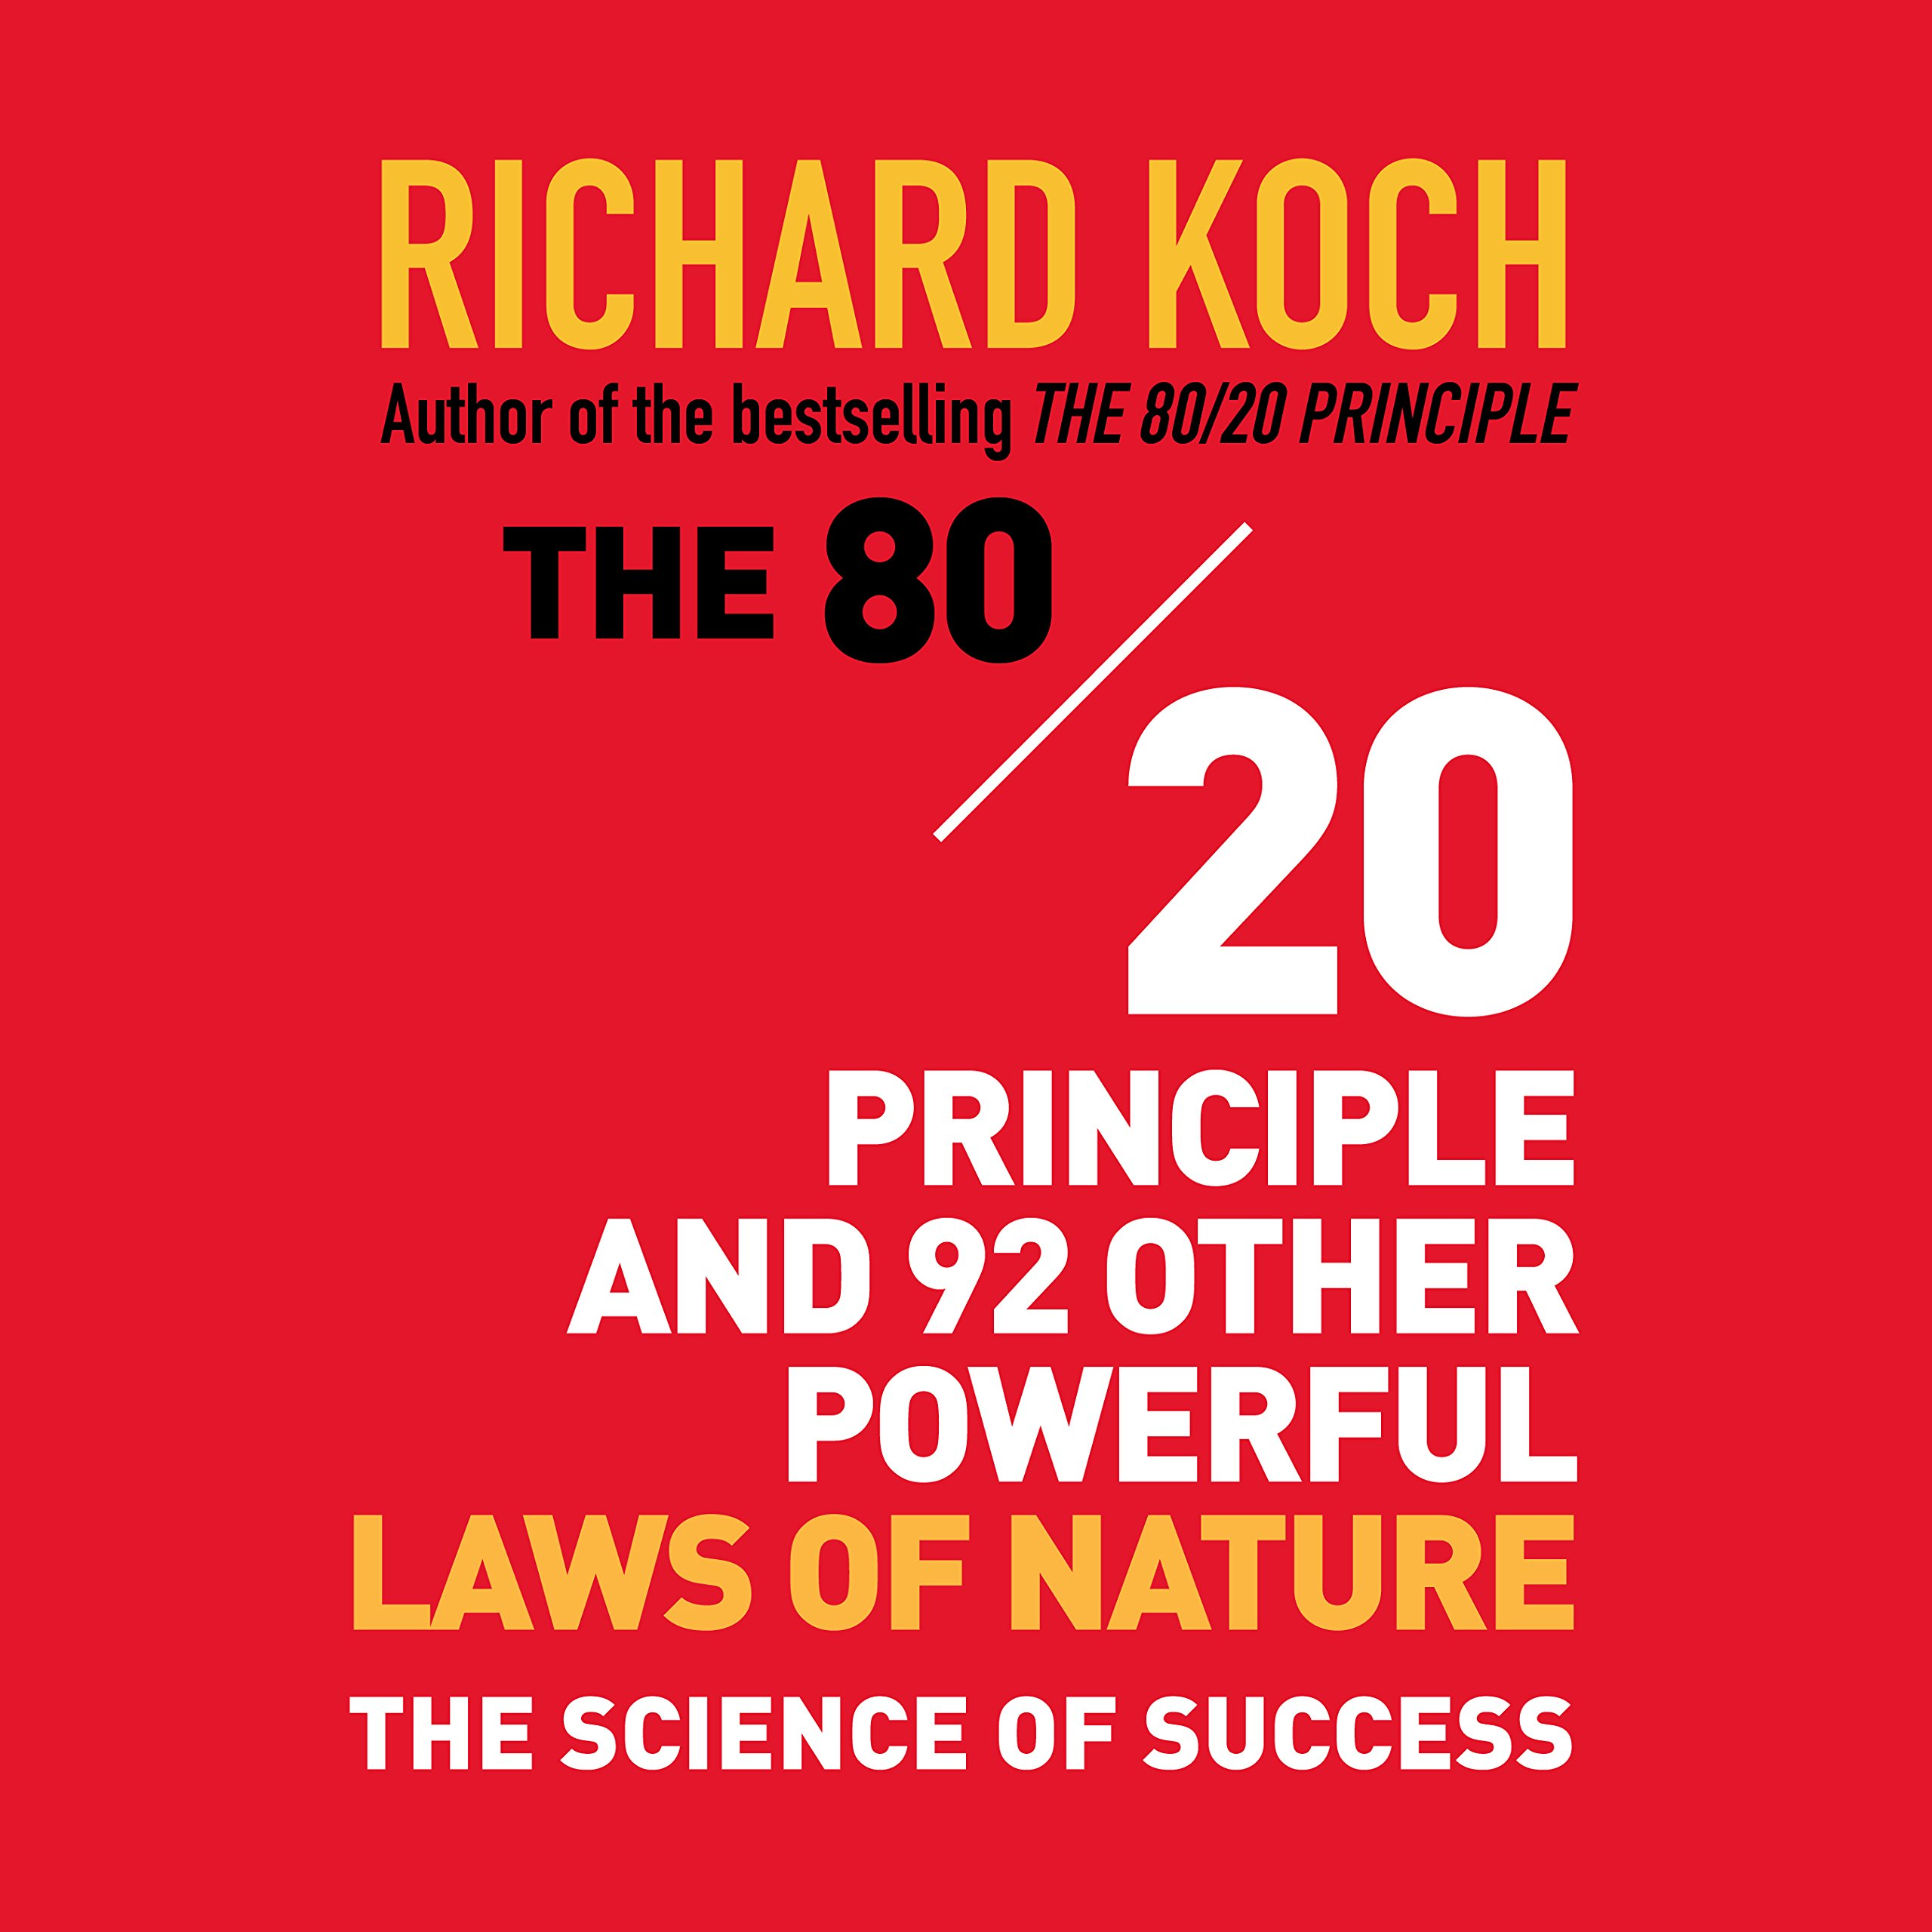 The 80/20 Principle and 92 Other Powerful Laws of Nature: The Science of  Success Audio CD – Audiobook, CD, Unabridged